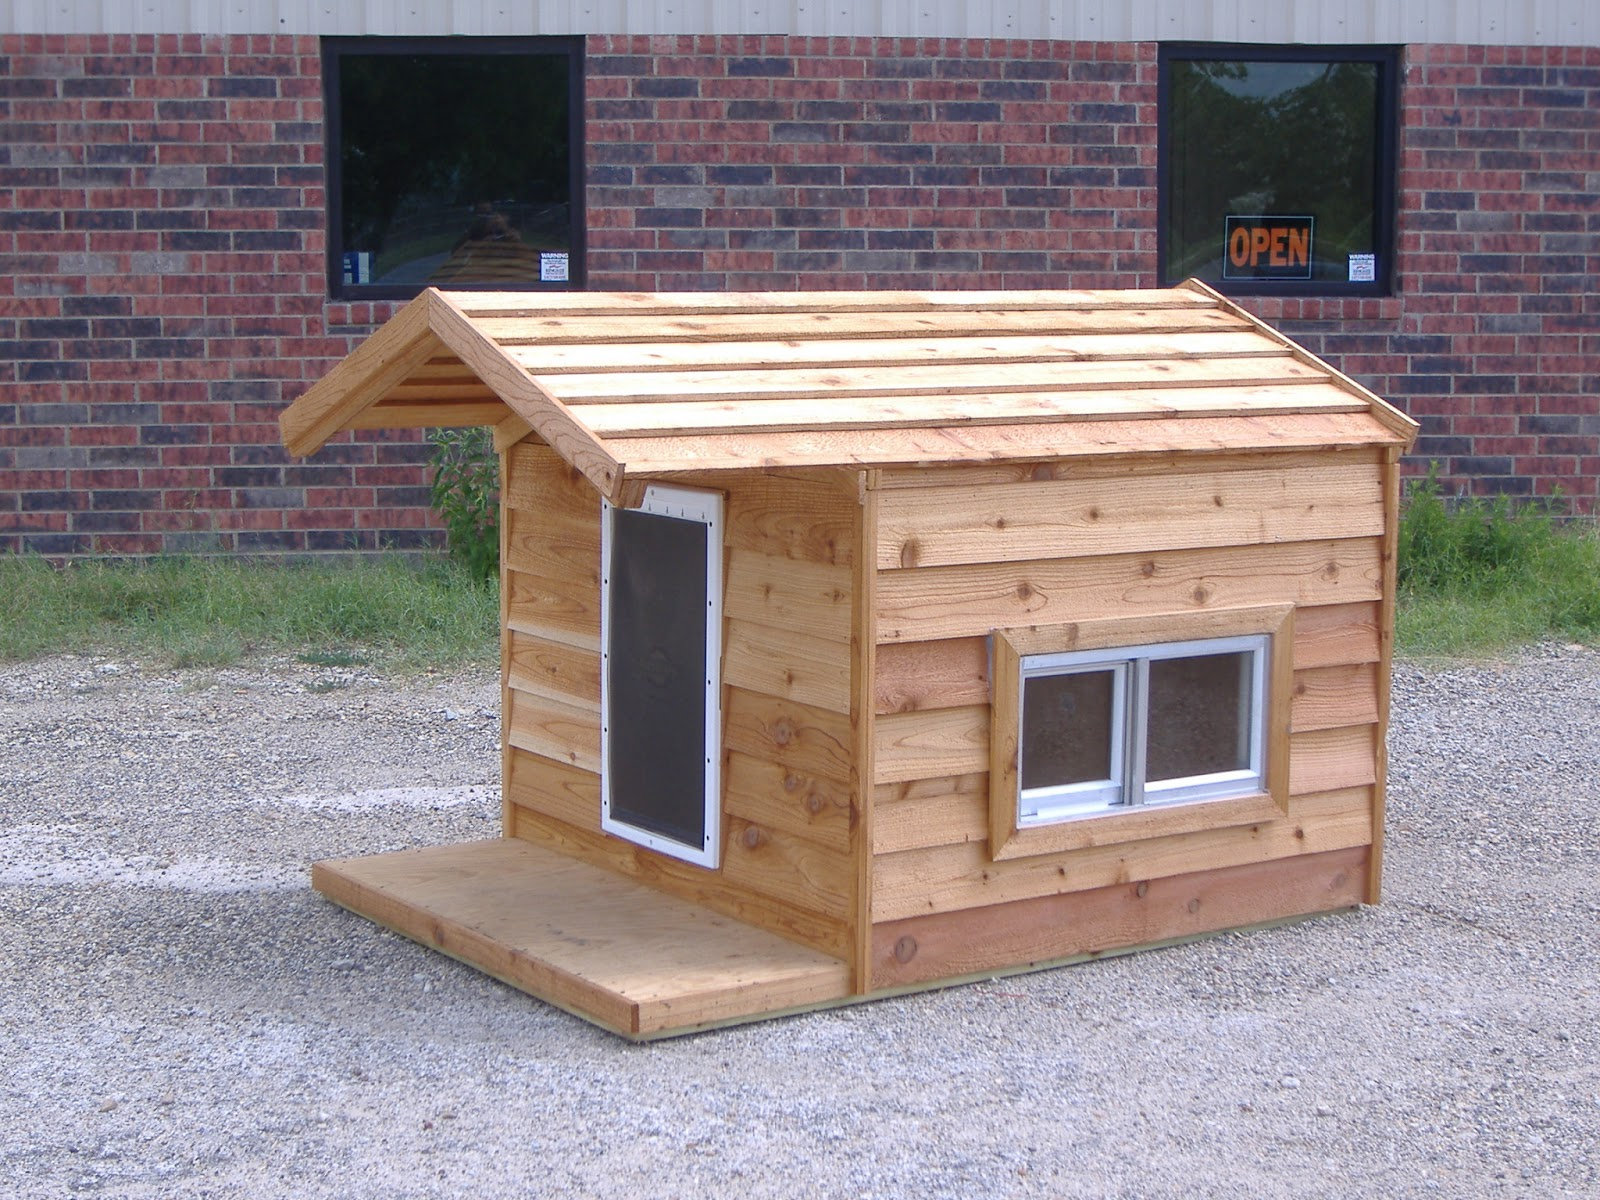 Giant Dog Houses For Sale Home Improvement